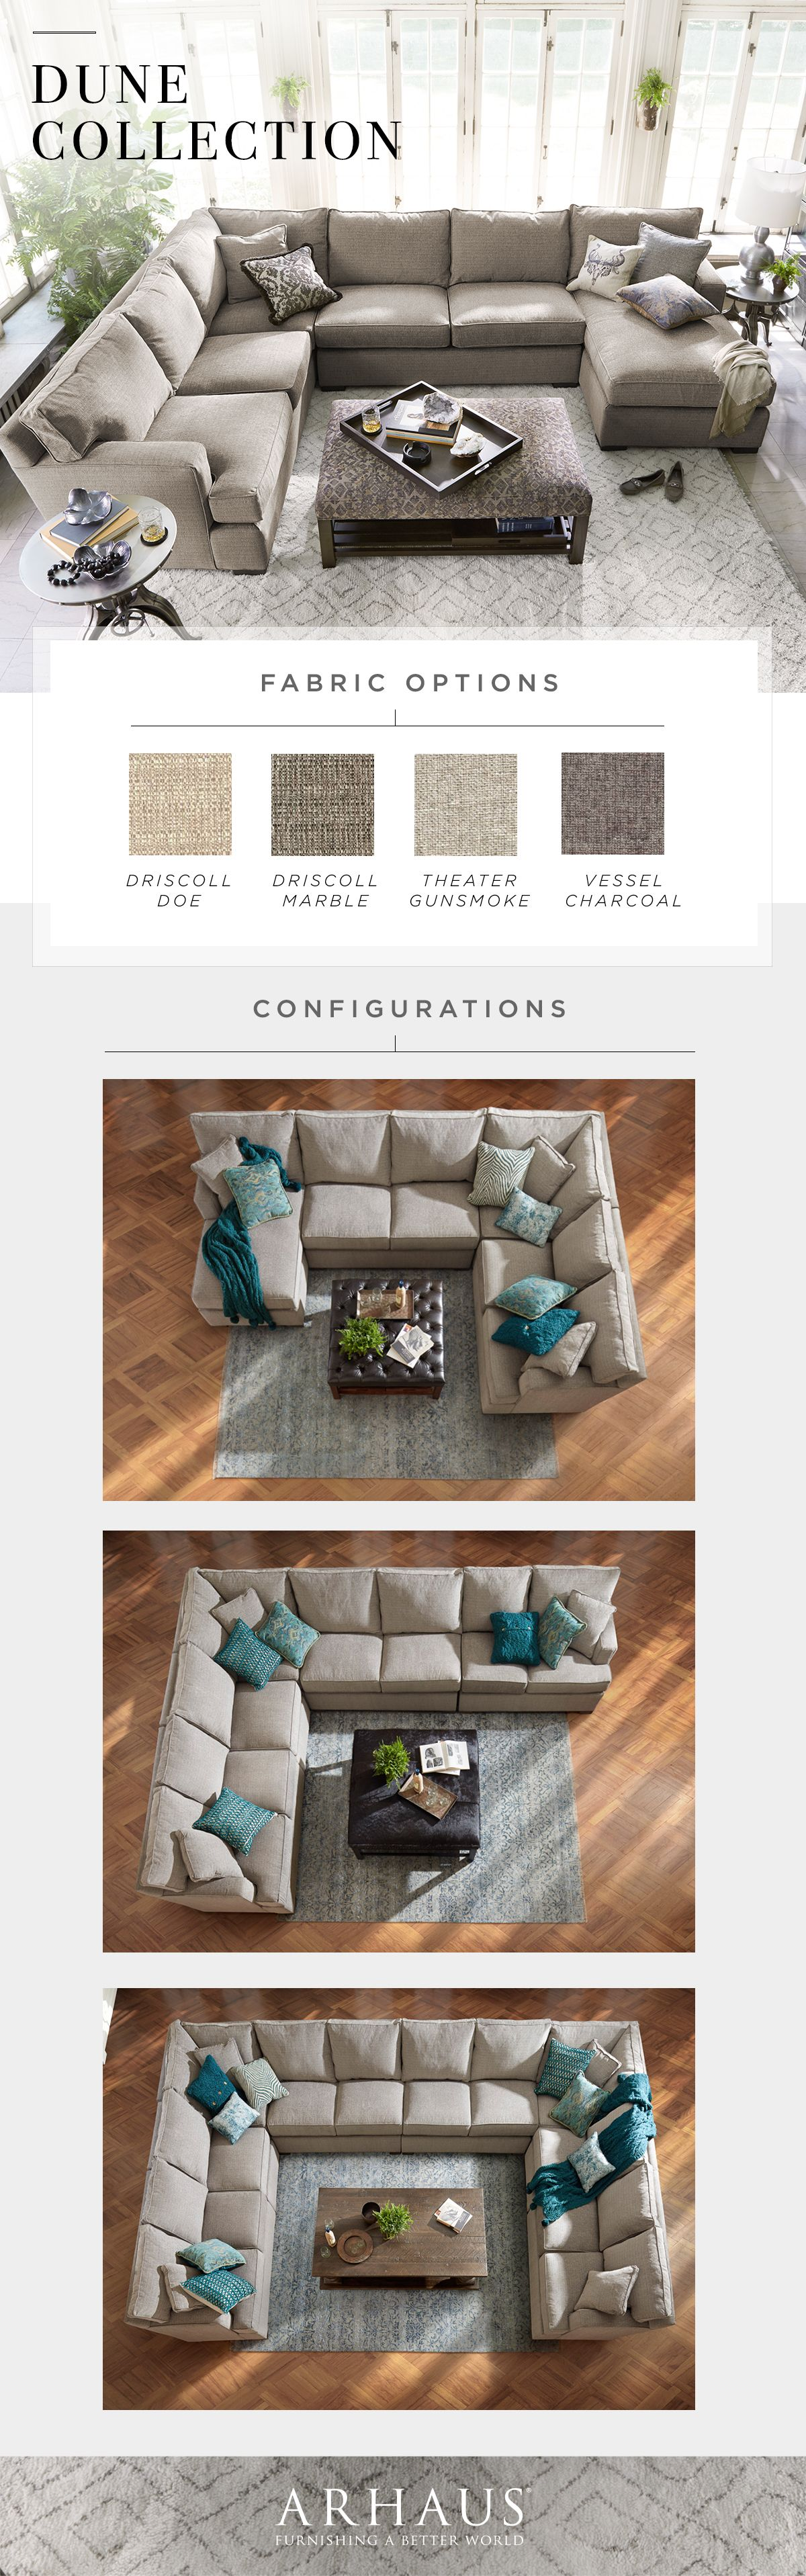 With a variety of pieces and upholstery options, Dune makes it easy ...